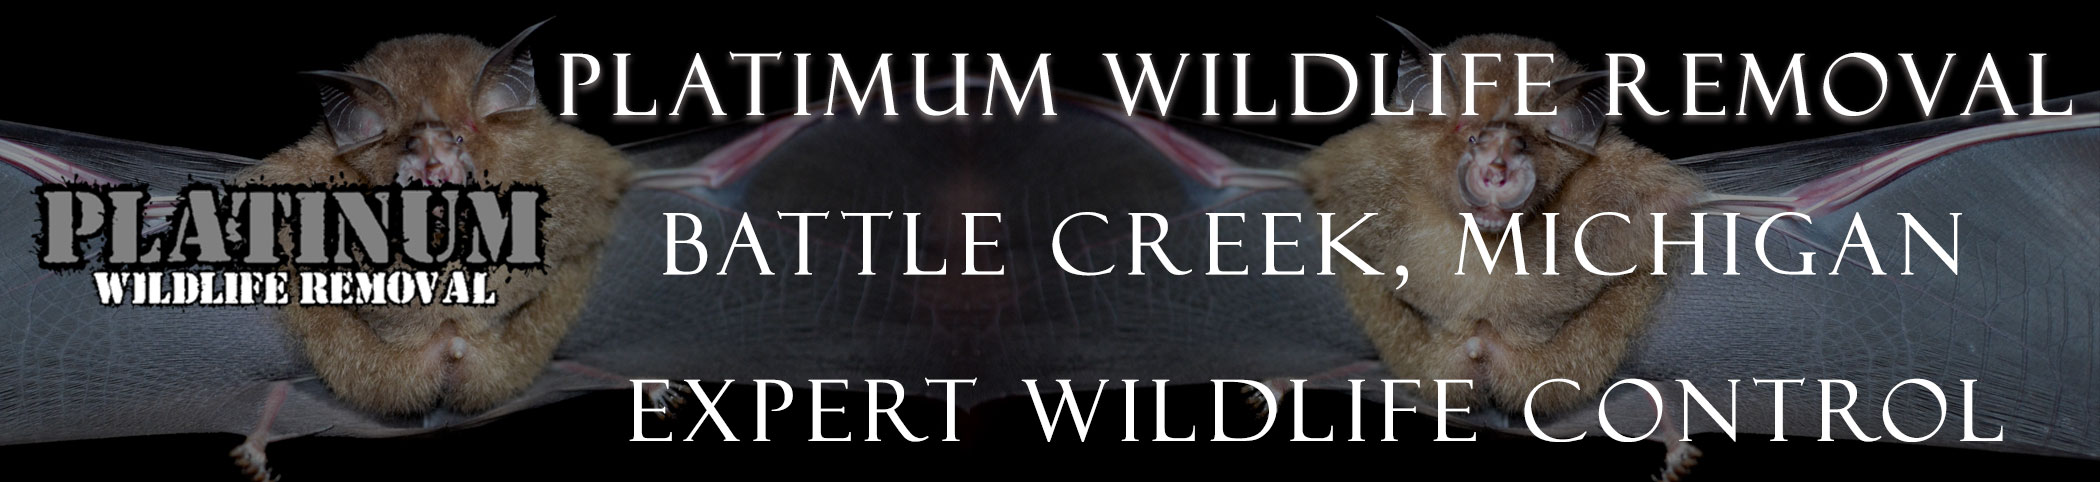 Battle Creek Michigan Bat Removal Header Image - Rent our bat removal page